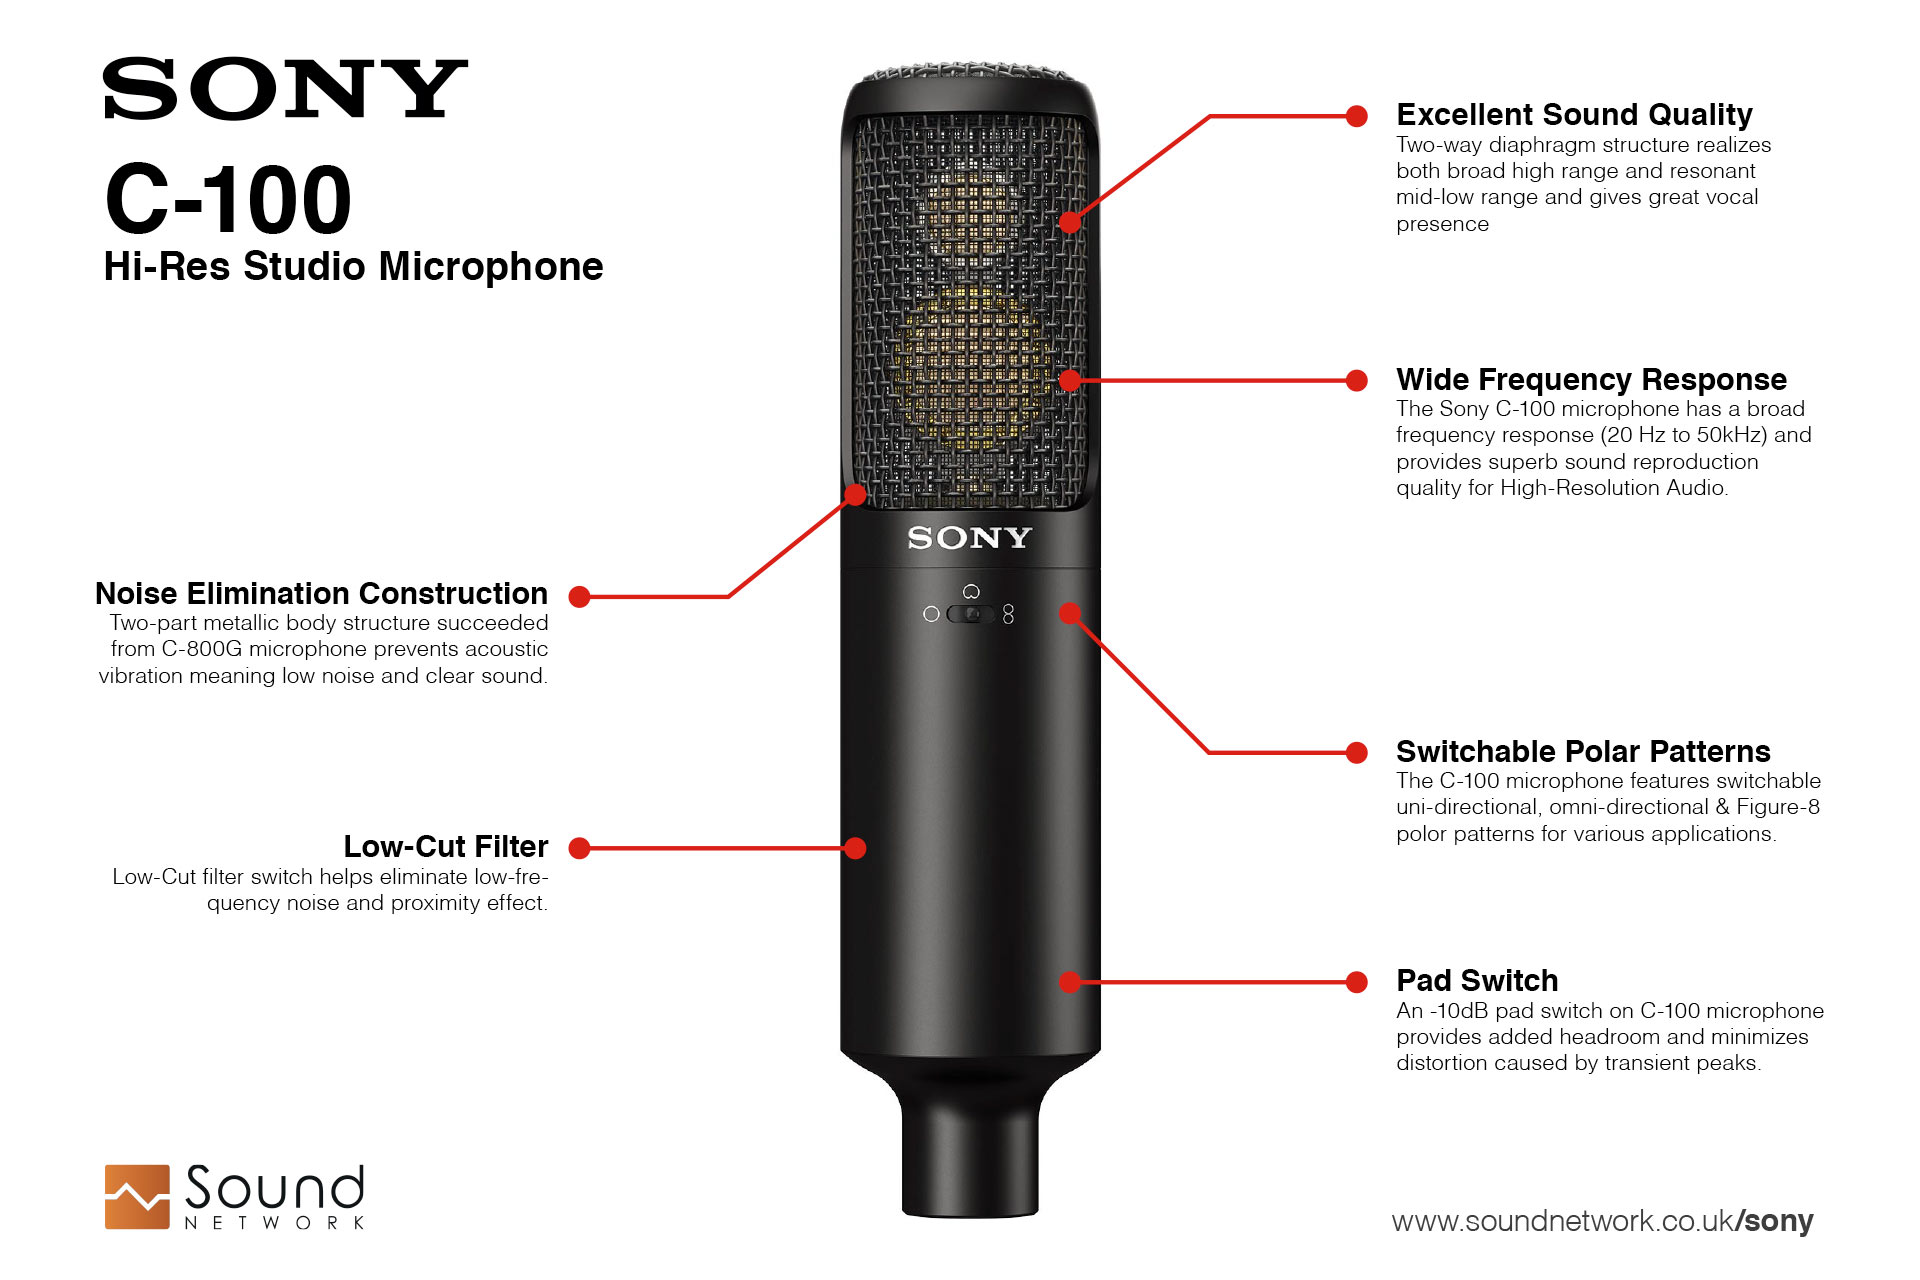 Sony C-100 Mic Features